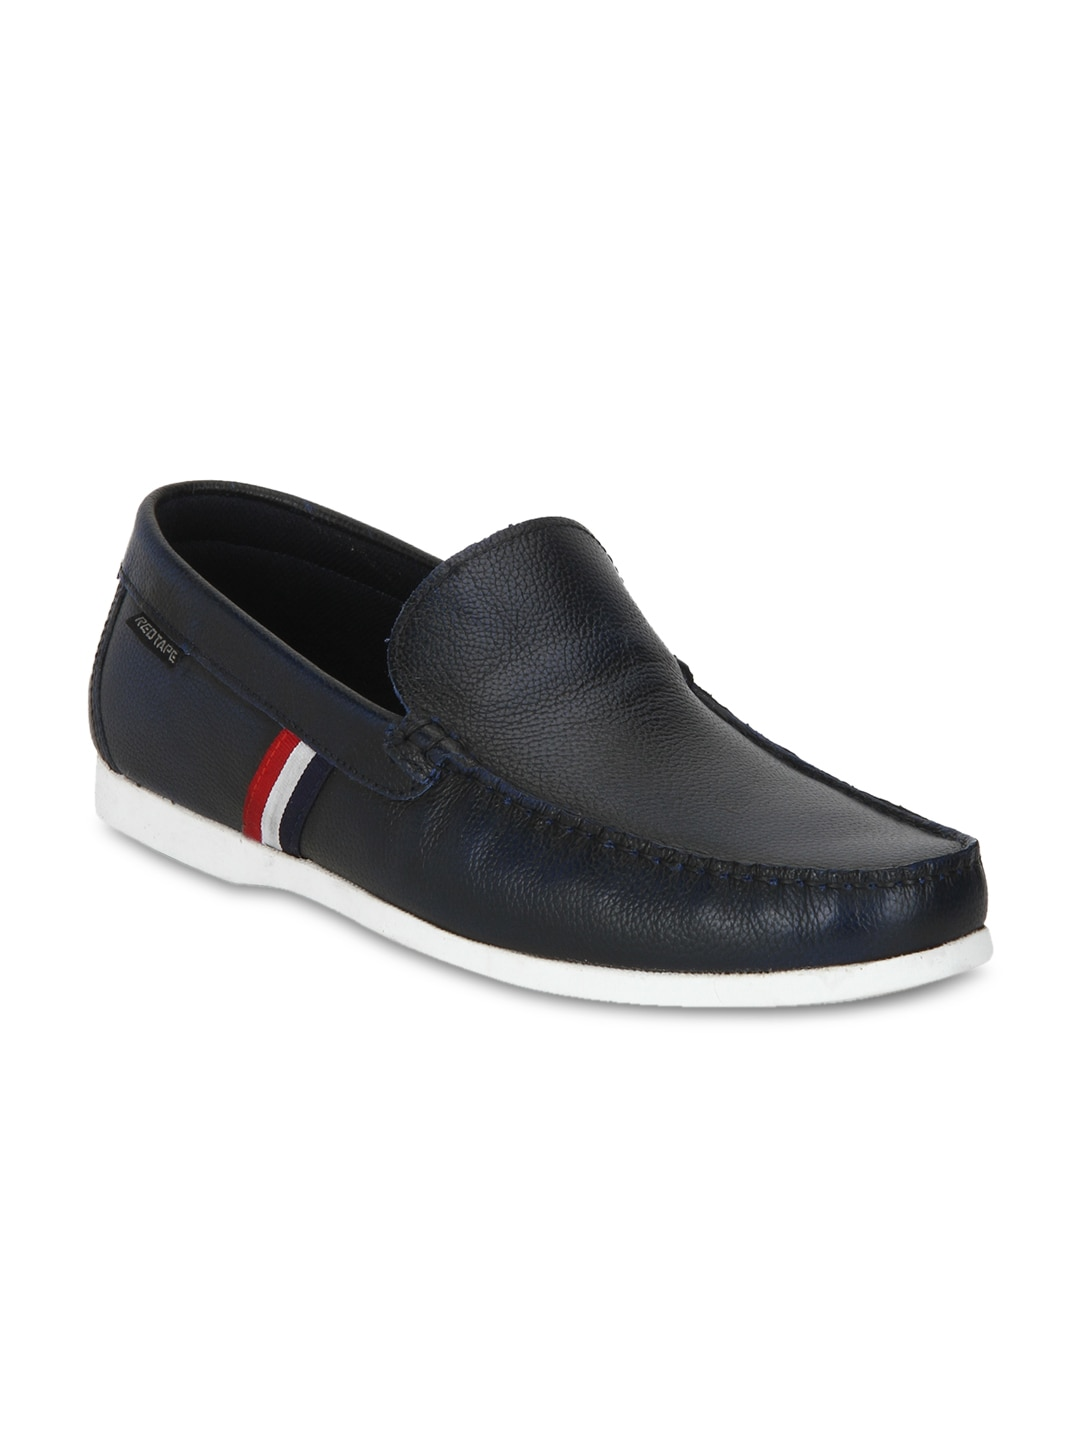 83c16c31330 Red Tape Loafers - Buy Red Tape Loafers online in India